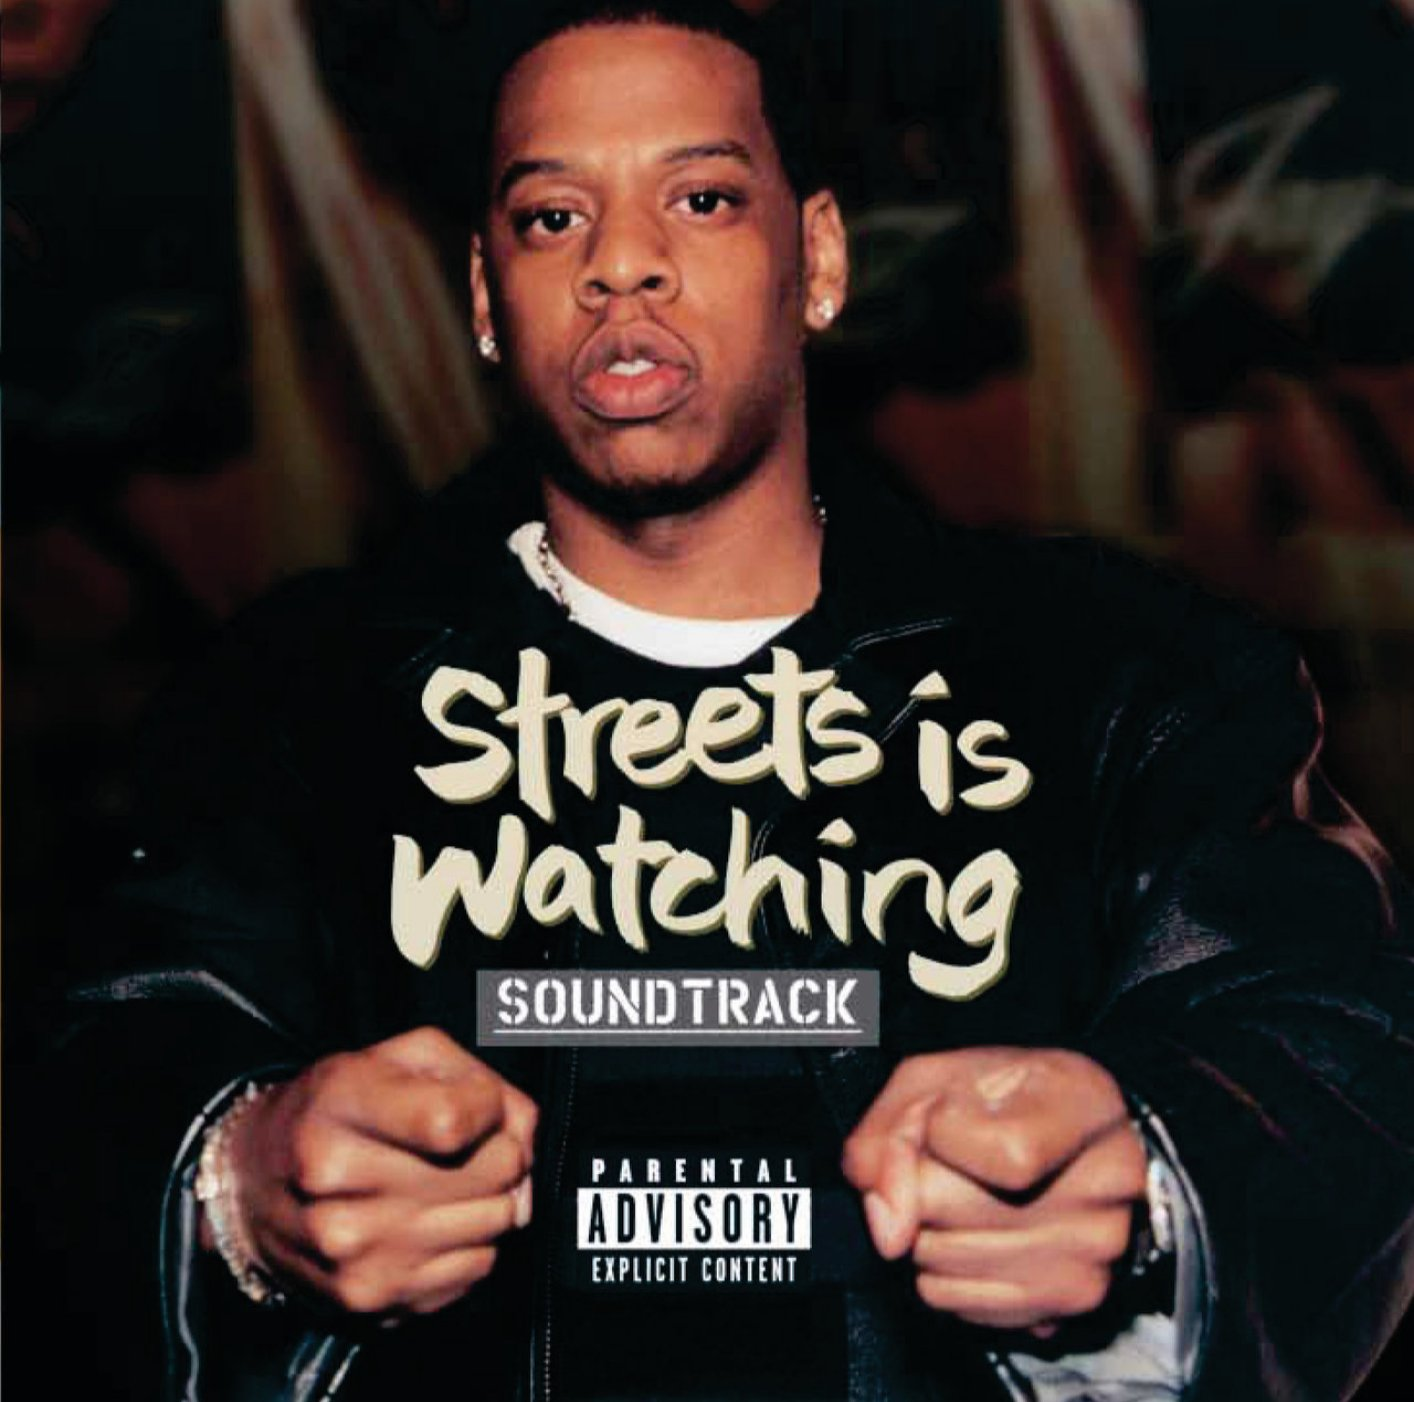 #StreetsIsWatching Soundtrack https://t.co/YcAsVFPGZJ #TIDAL https://t.co/BRXW4jstNG